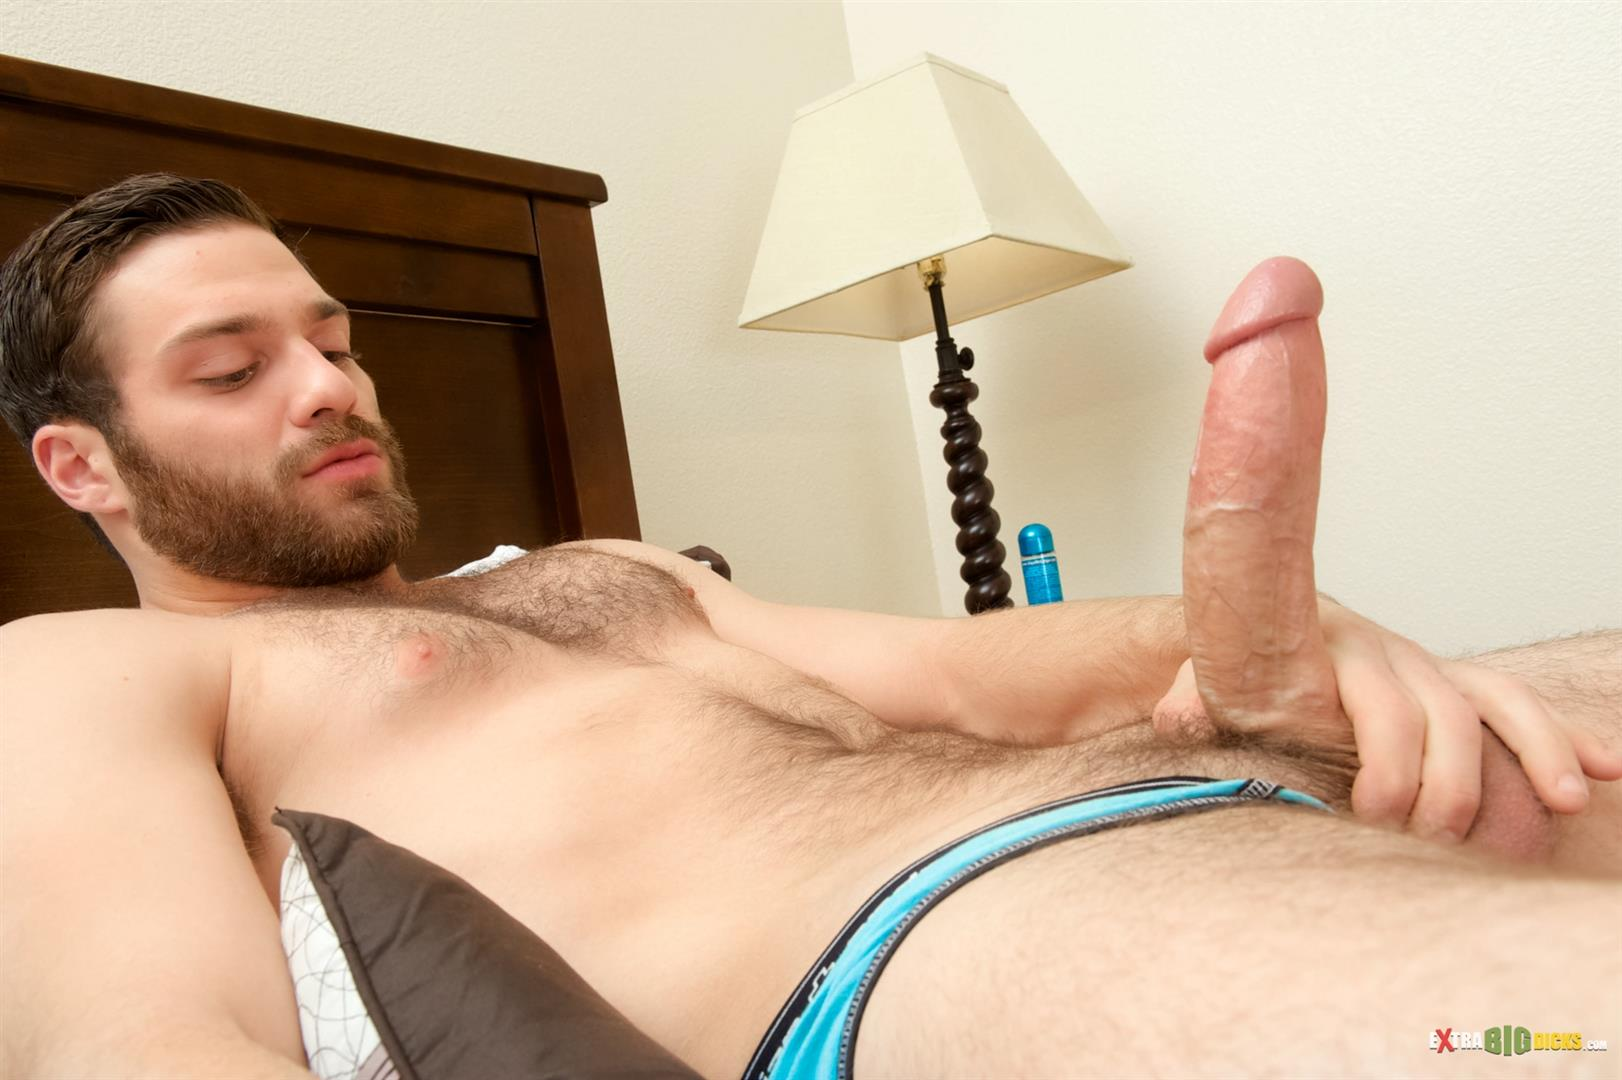 Extra Big Dicks Tommy Defendi Hairy Muscle Guy Jerking Off Amateur Gay Porn 03 Hairy Muscle Stud Tommy Defendi Jerking Off His Big Thick Cock